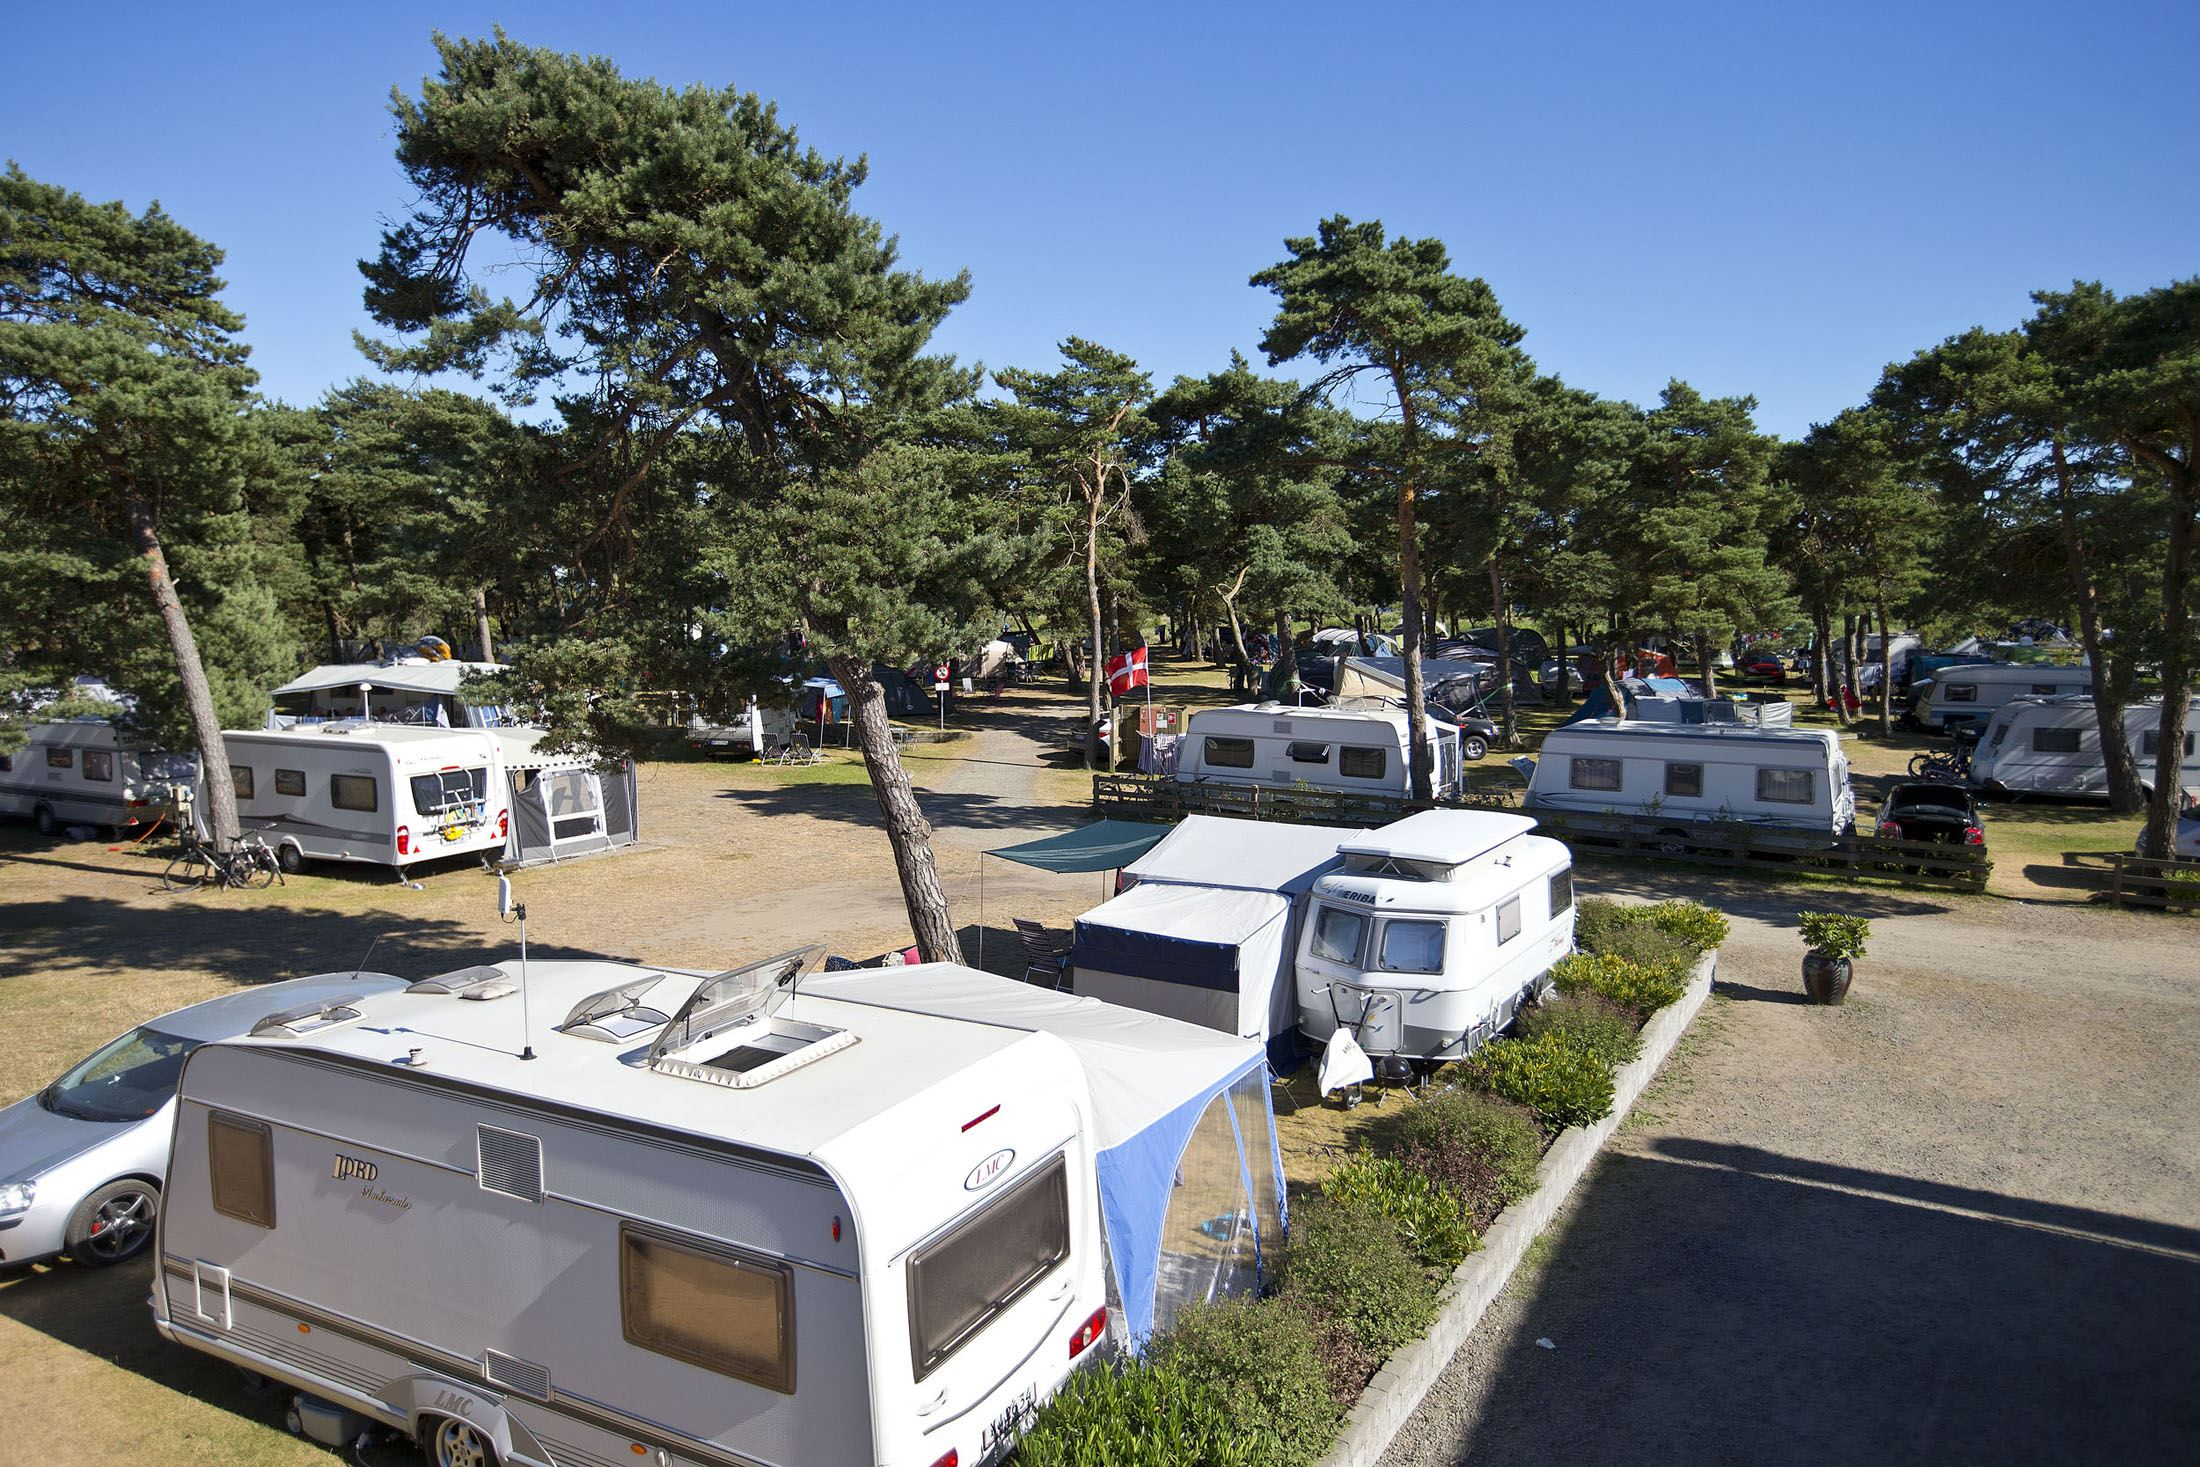 Dueodde Familiecamping udlejning campingvogn